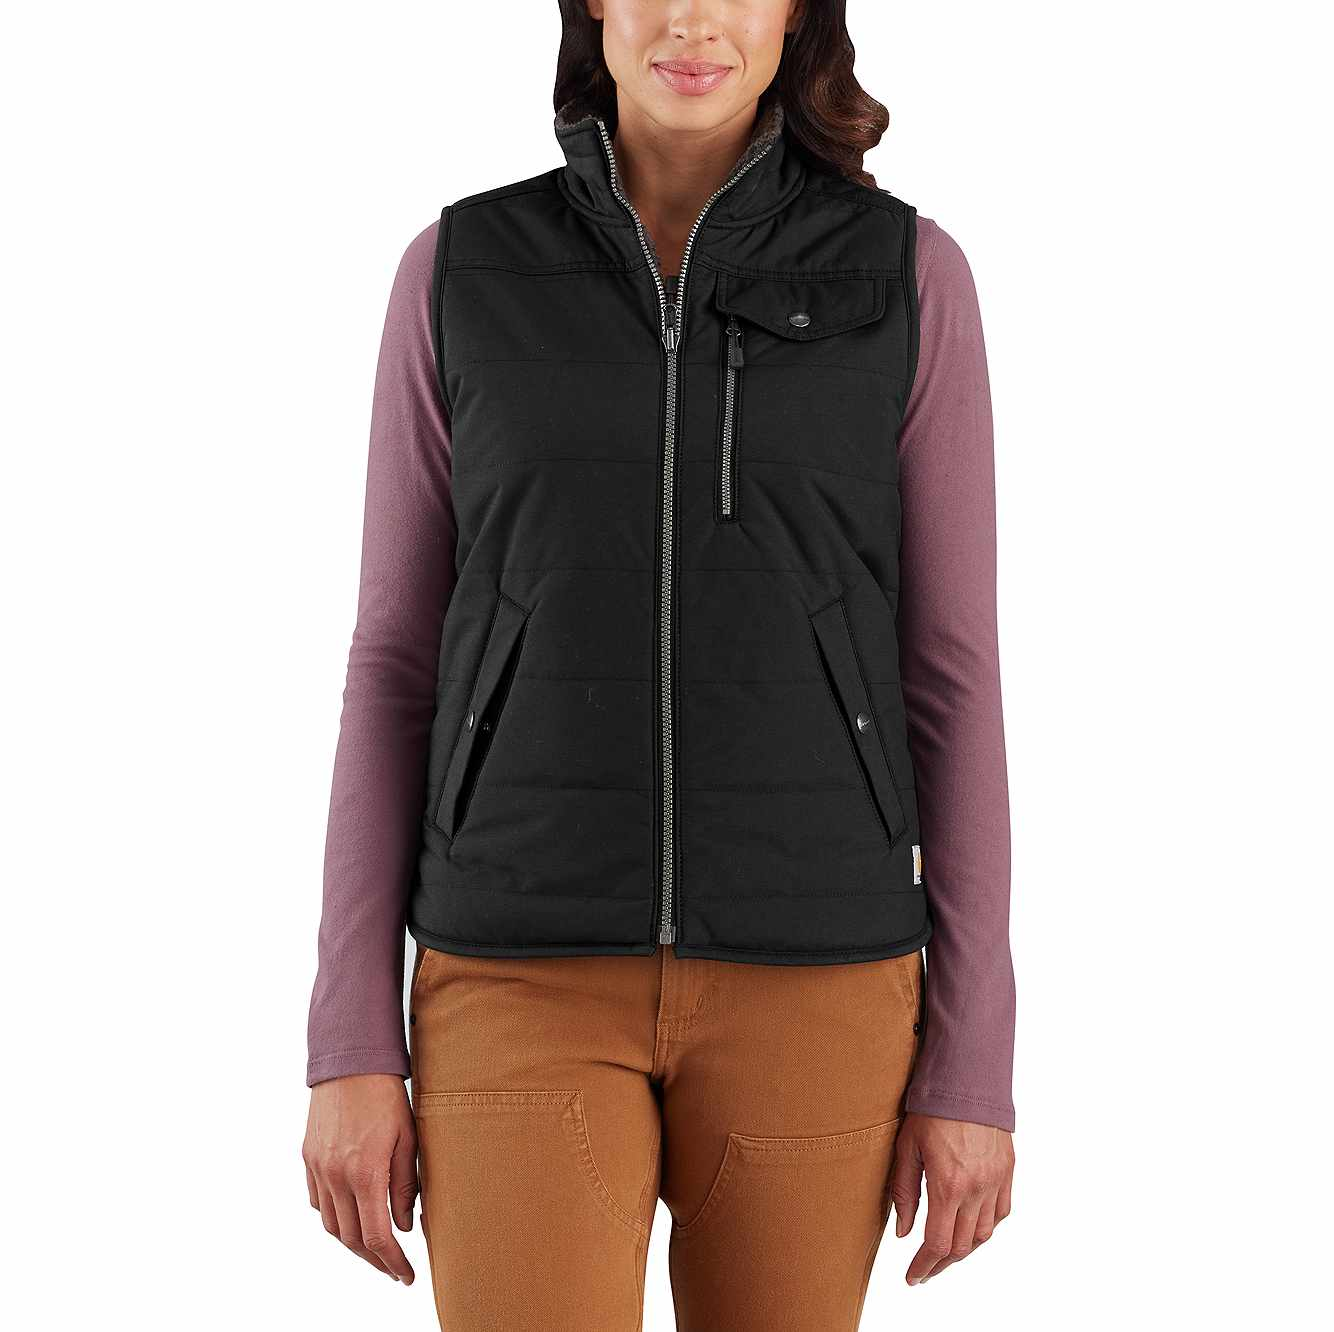 Picture of Utility Sherpa-Lined Vest in Black